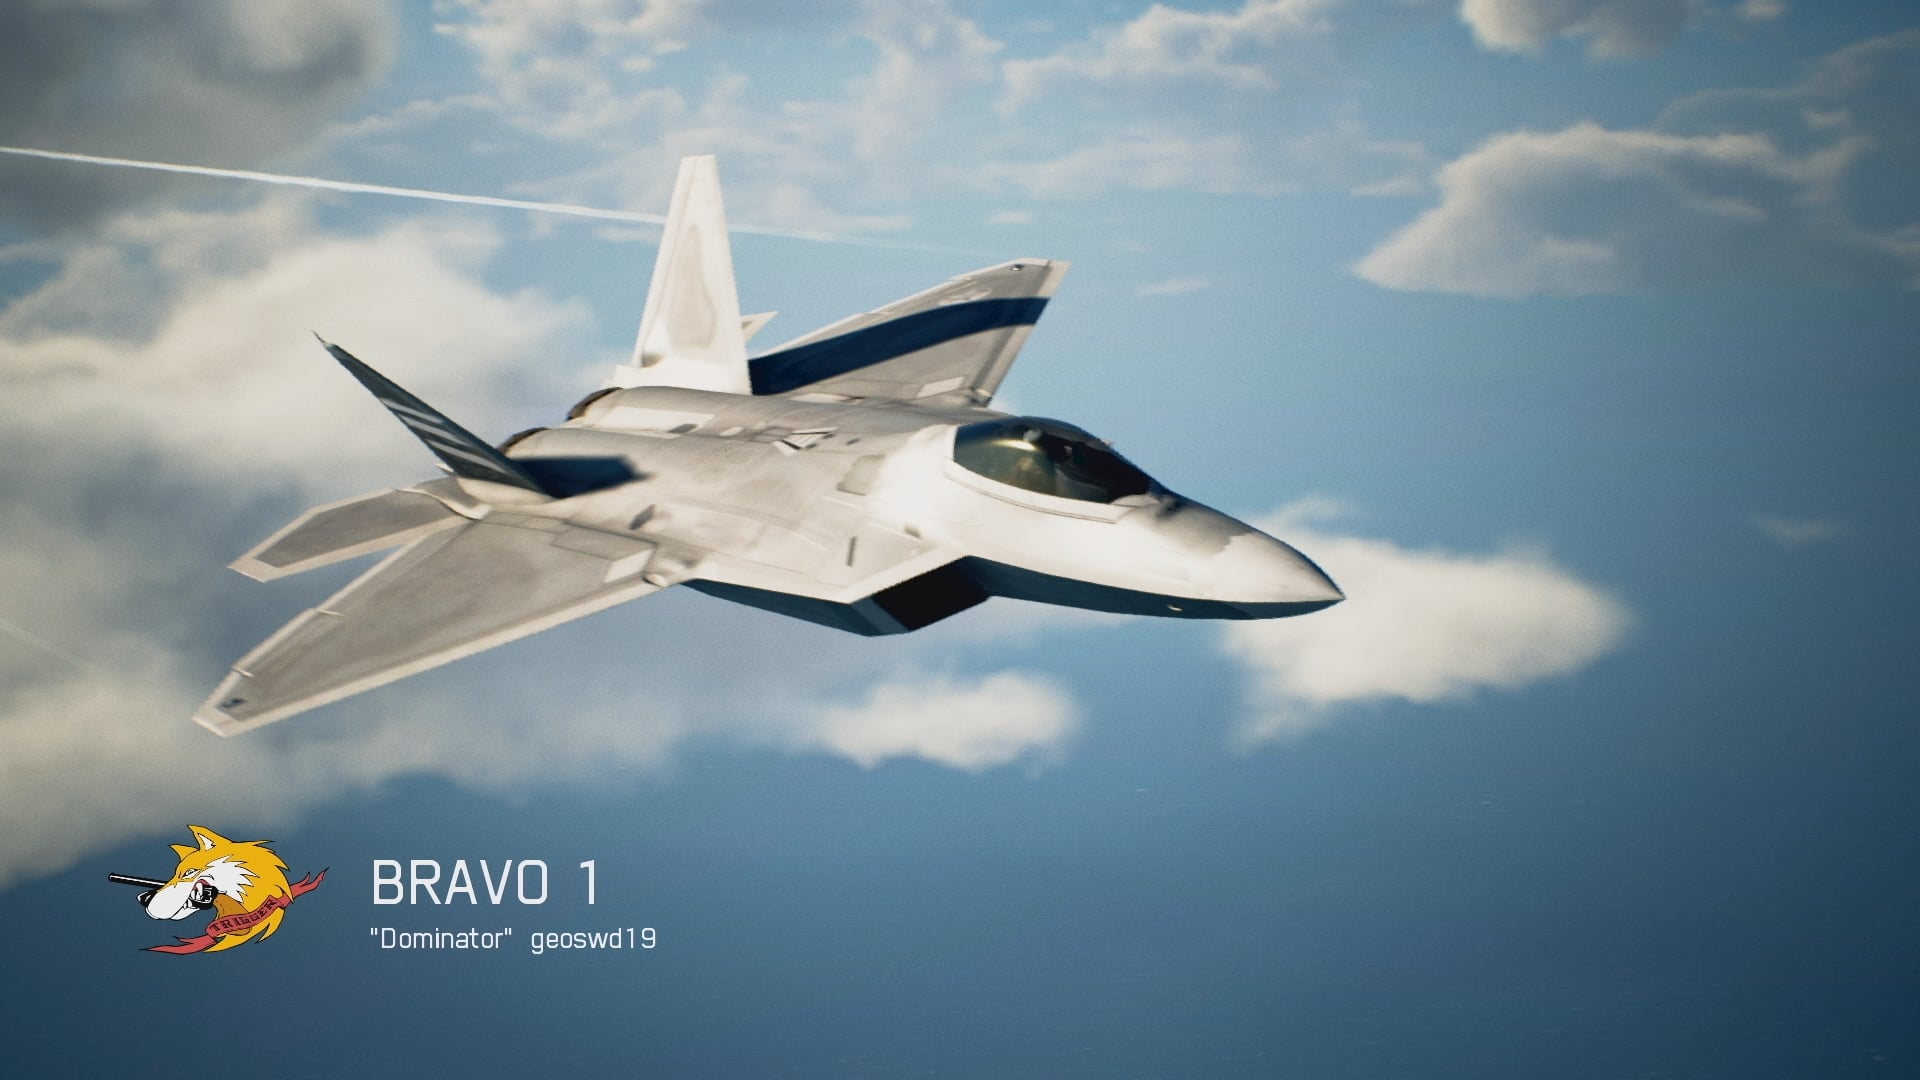 Ace Combat 7: Skies Unknown shows off more gameplay and online multiplayer